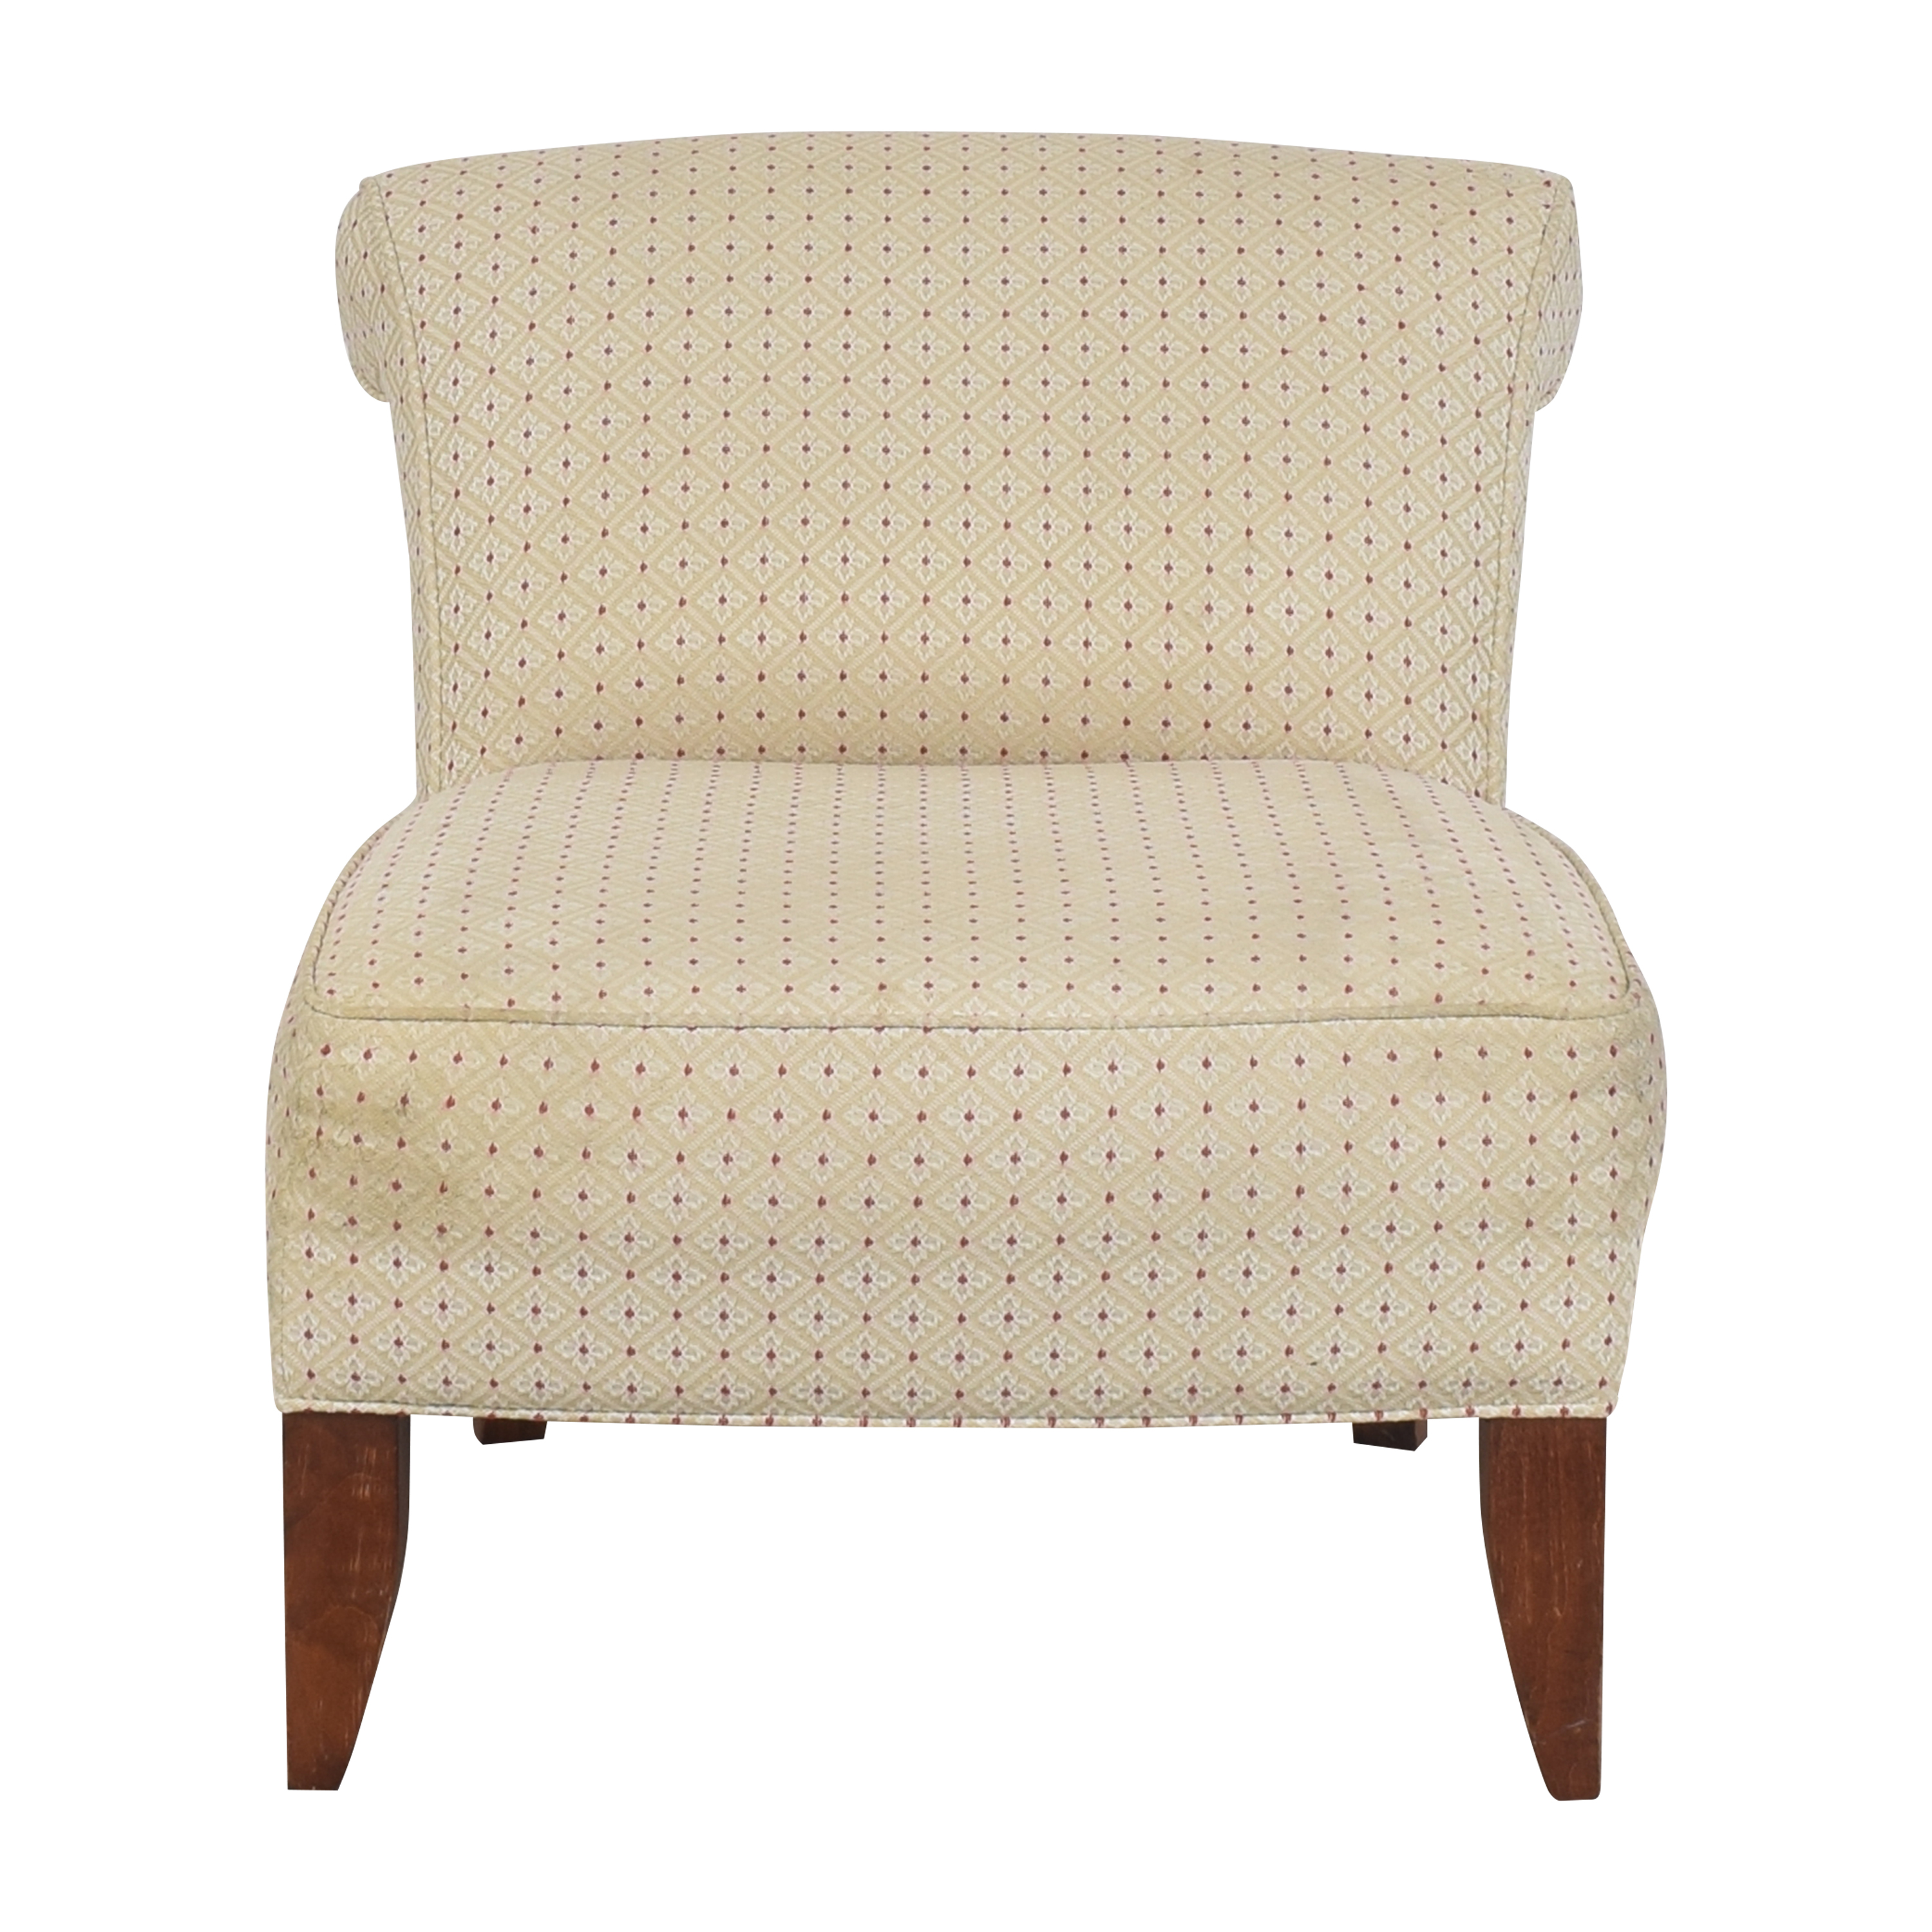 shop Ethan Allen Slipper Chair Ethan Allen Chairs